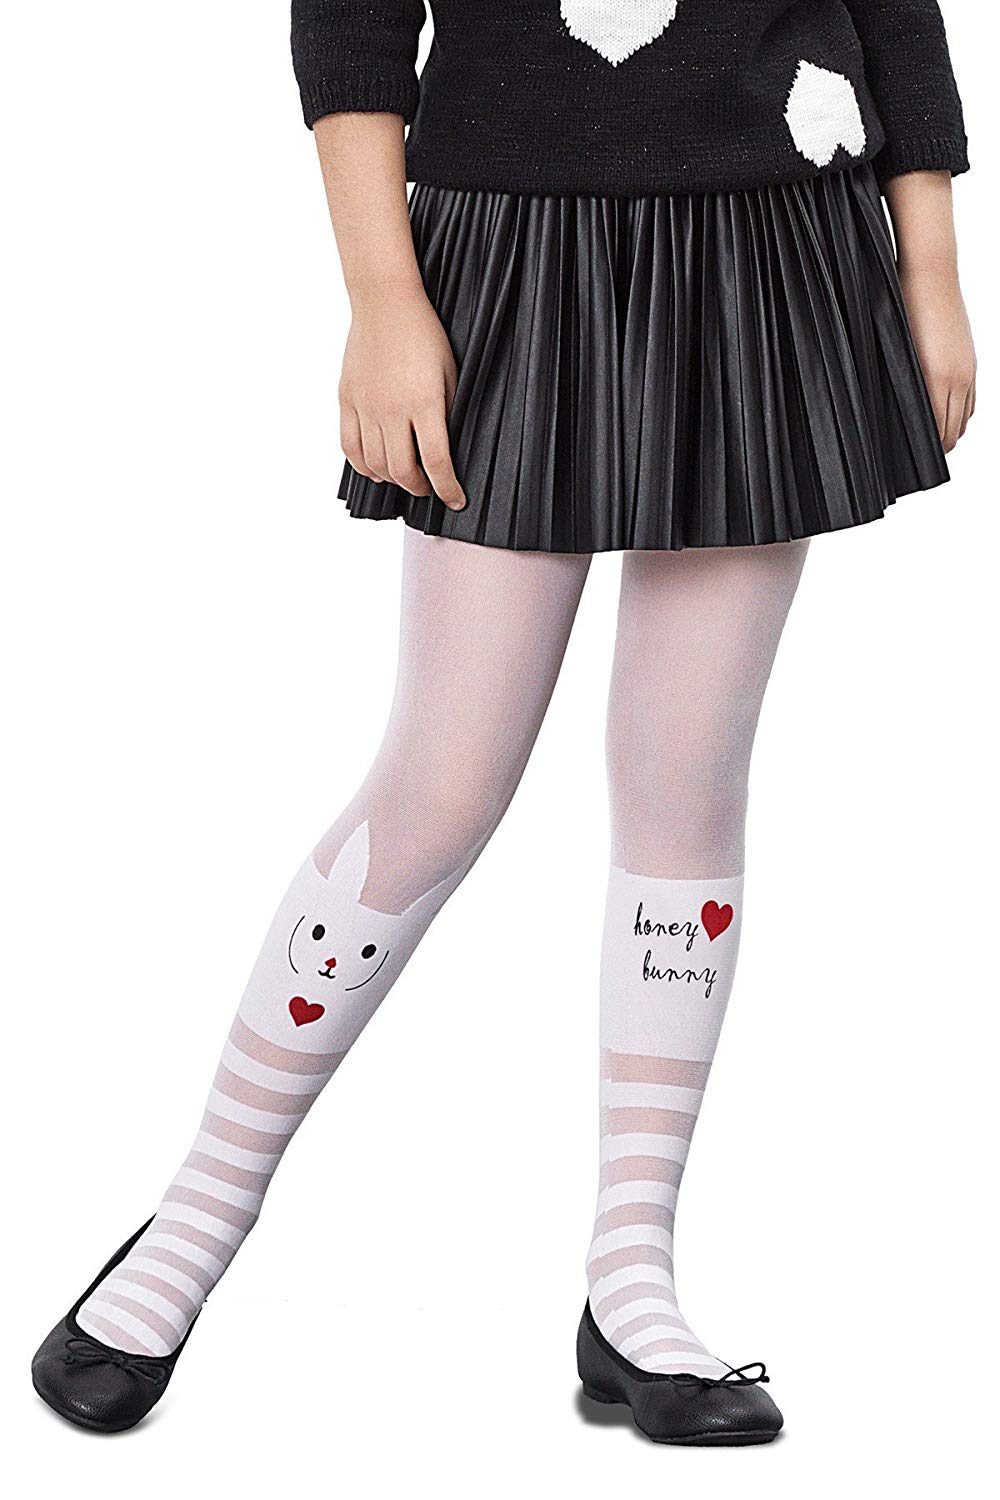 be601598bac72 Get Quotations · Penti Pretty Love Bunny 30 Den Girls Footed Tights